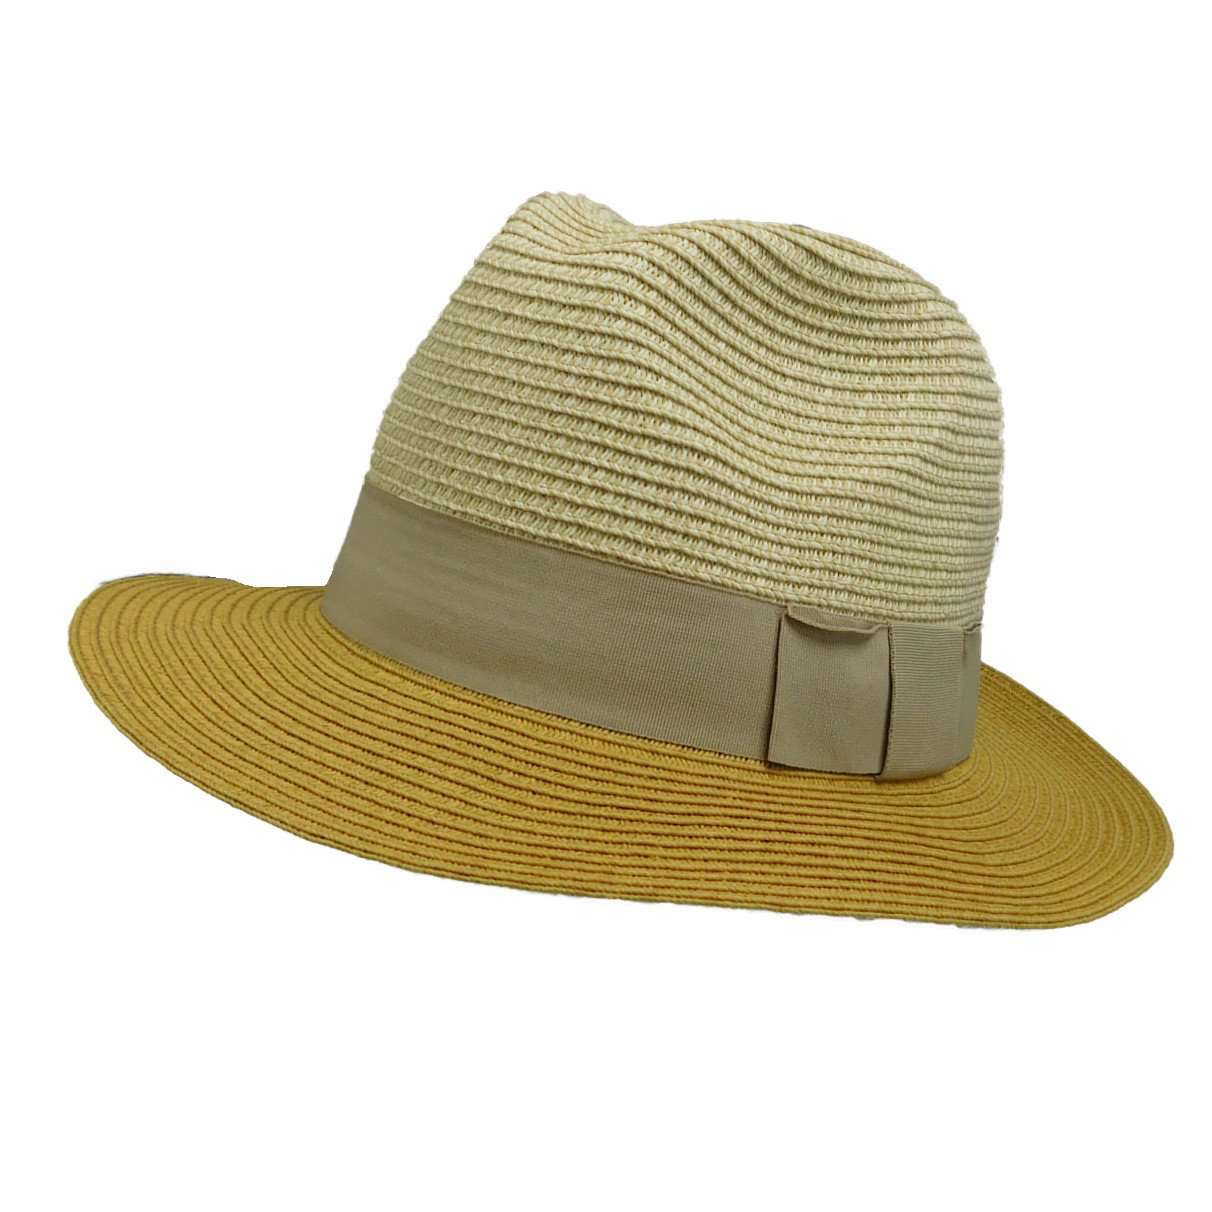 Two Tone Safari Style Hat - SetarTrading Hats